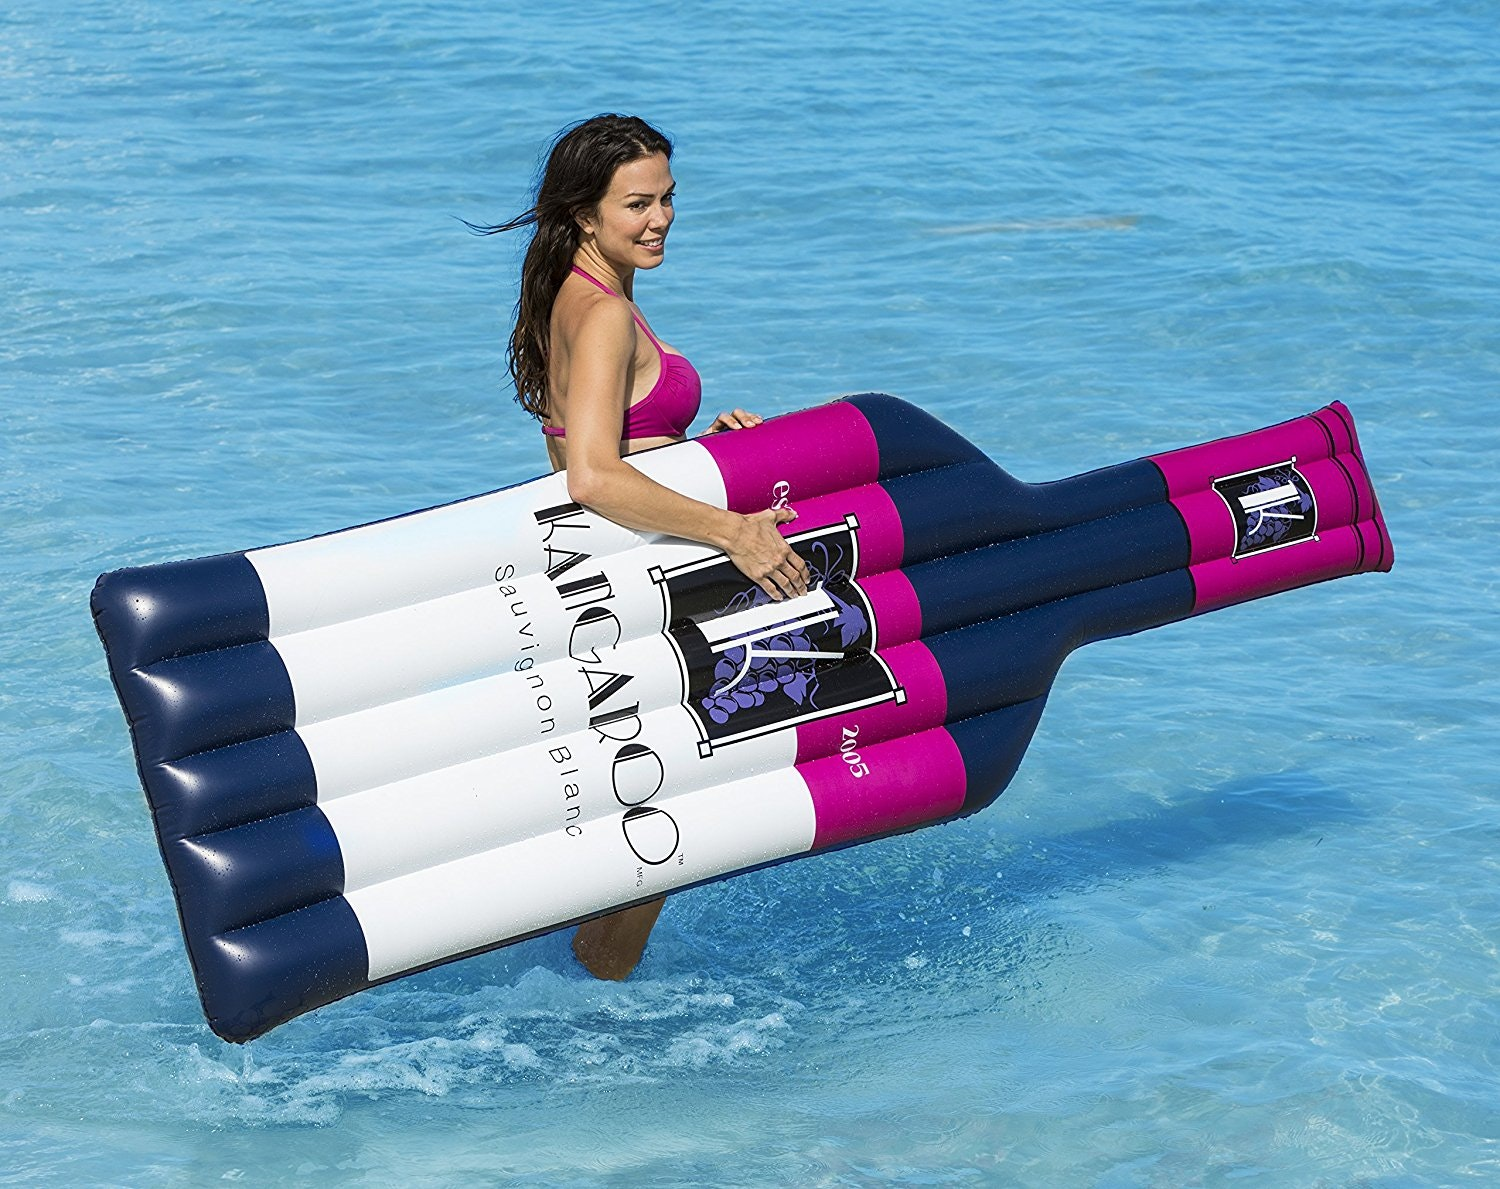 The perfect pool float for wine o'clock